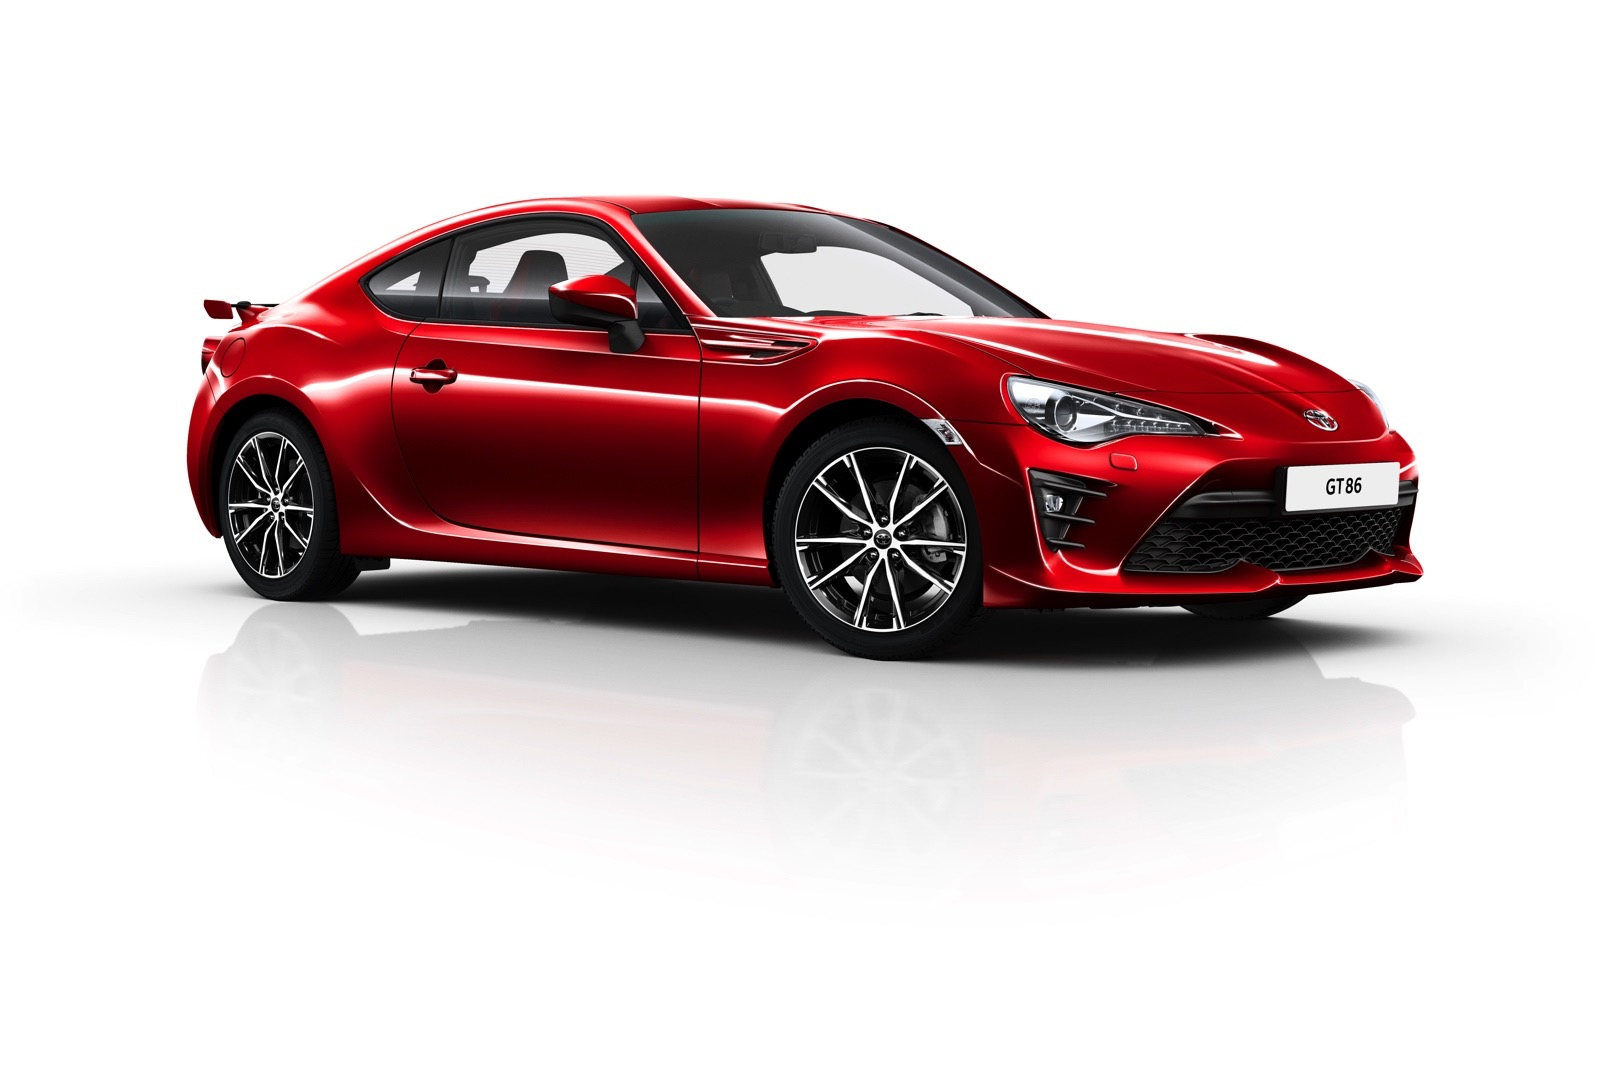 2017 Toyota GT86 Priced From 25495 In The United Kingdom